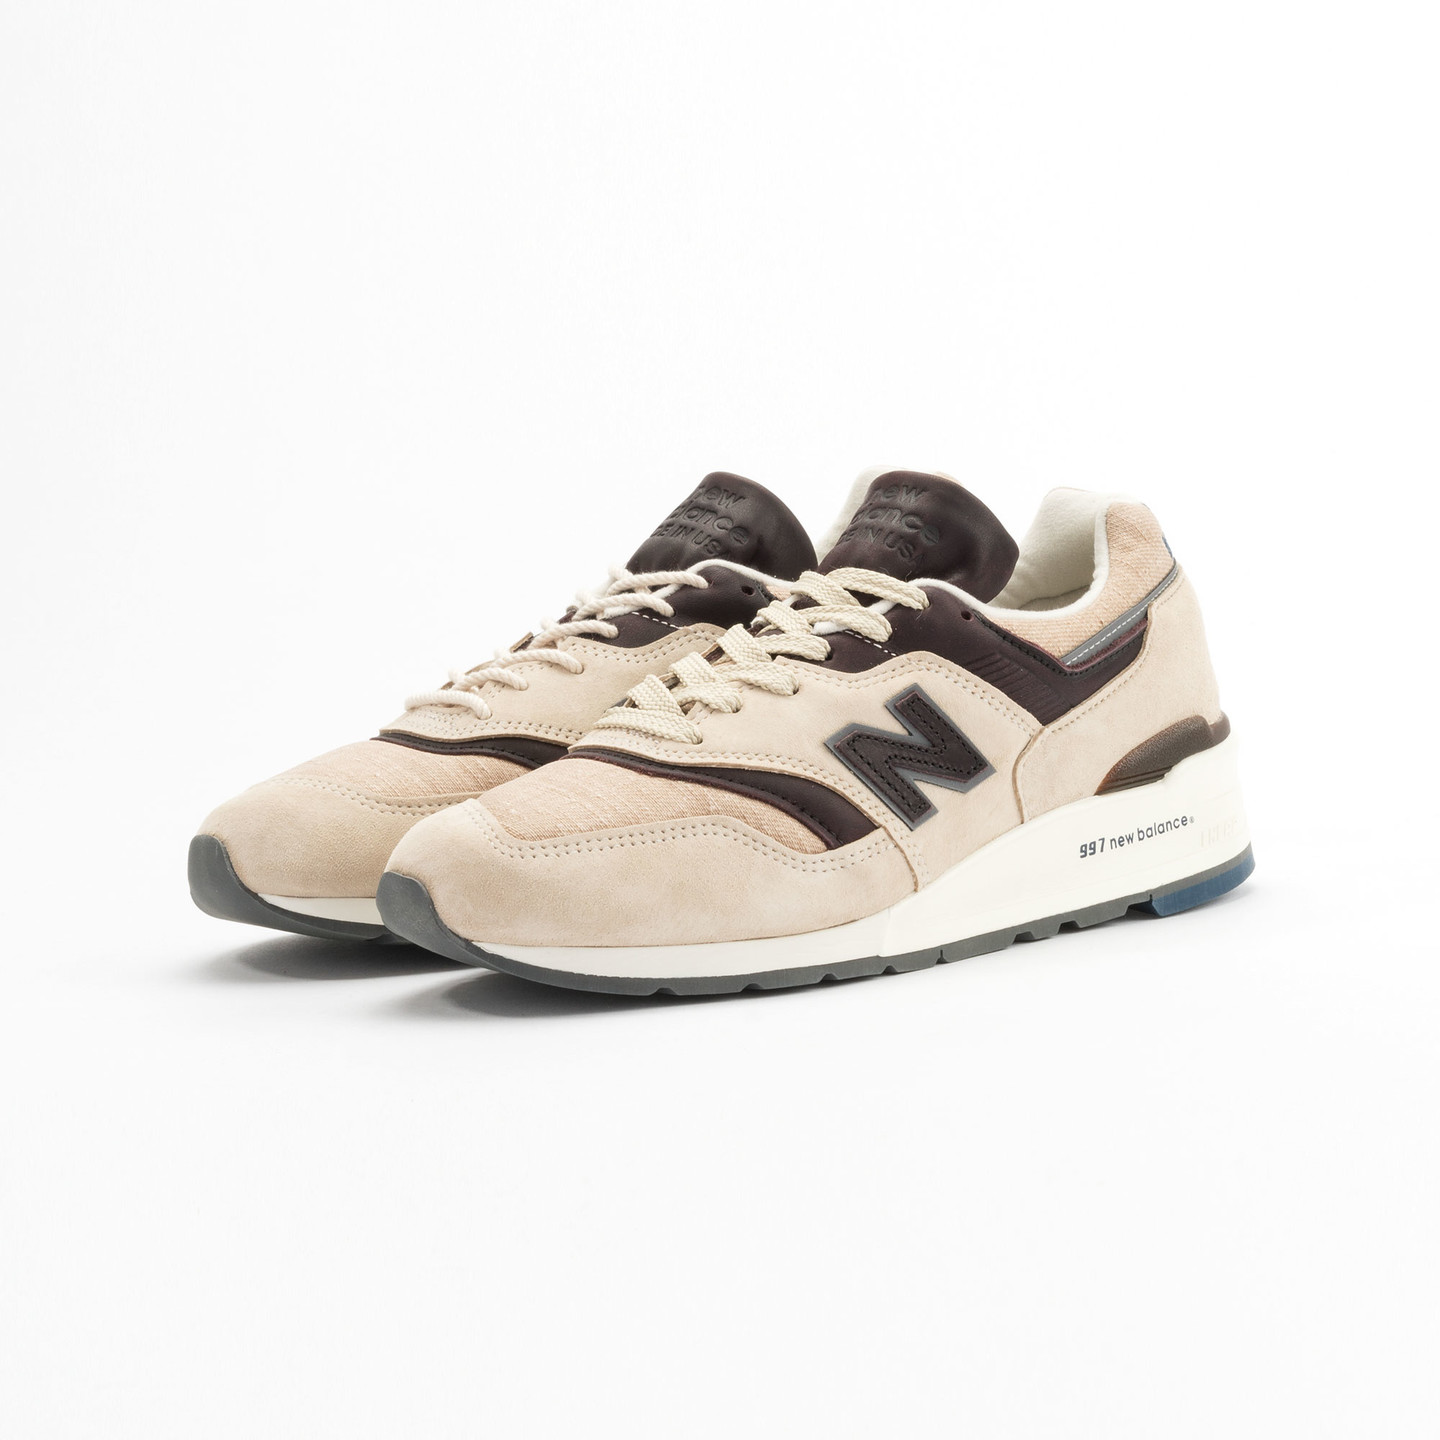 New Balance M997 DSAI - Made in USA Sand / Antique Brown M997DSAI-43